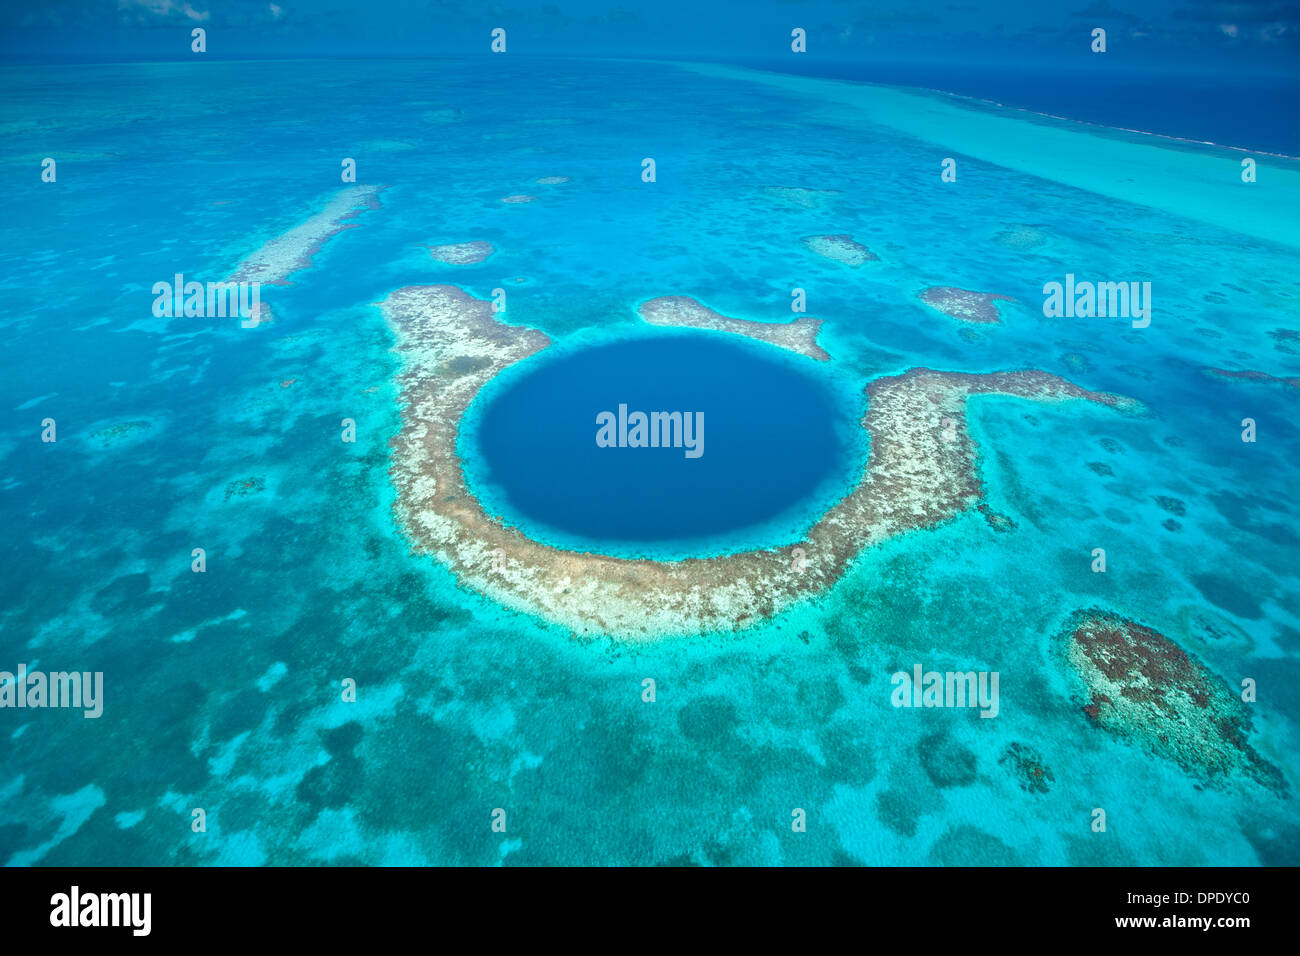 The Blue Hole Blue Hole National Monument, Belize Caribbean Sea Meso-American Reef Lighthouse Reef Atoll 400 foot hole in reef - Stock Image